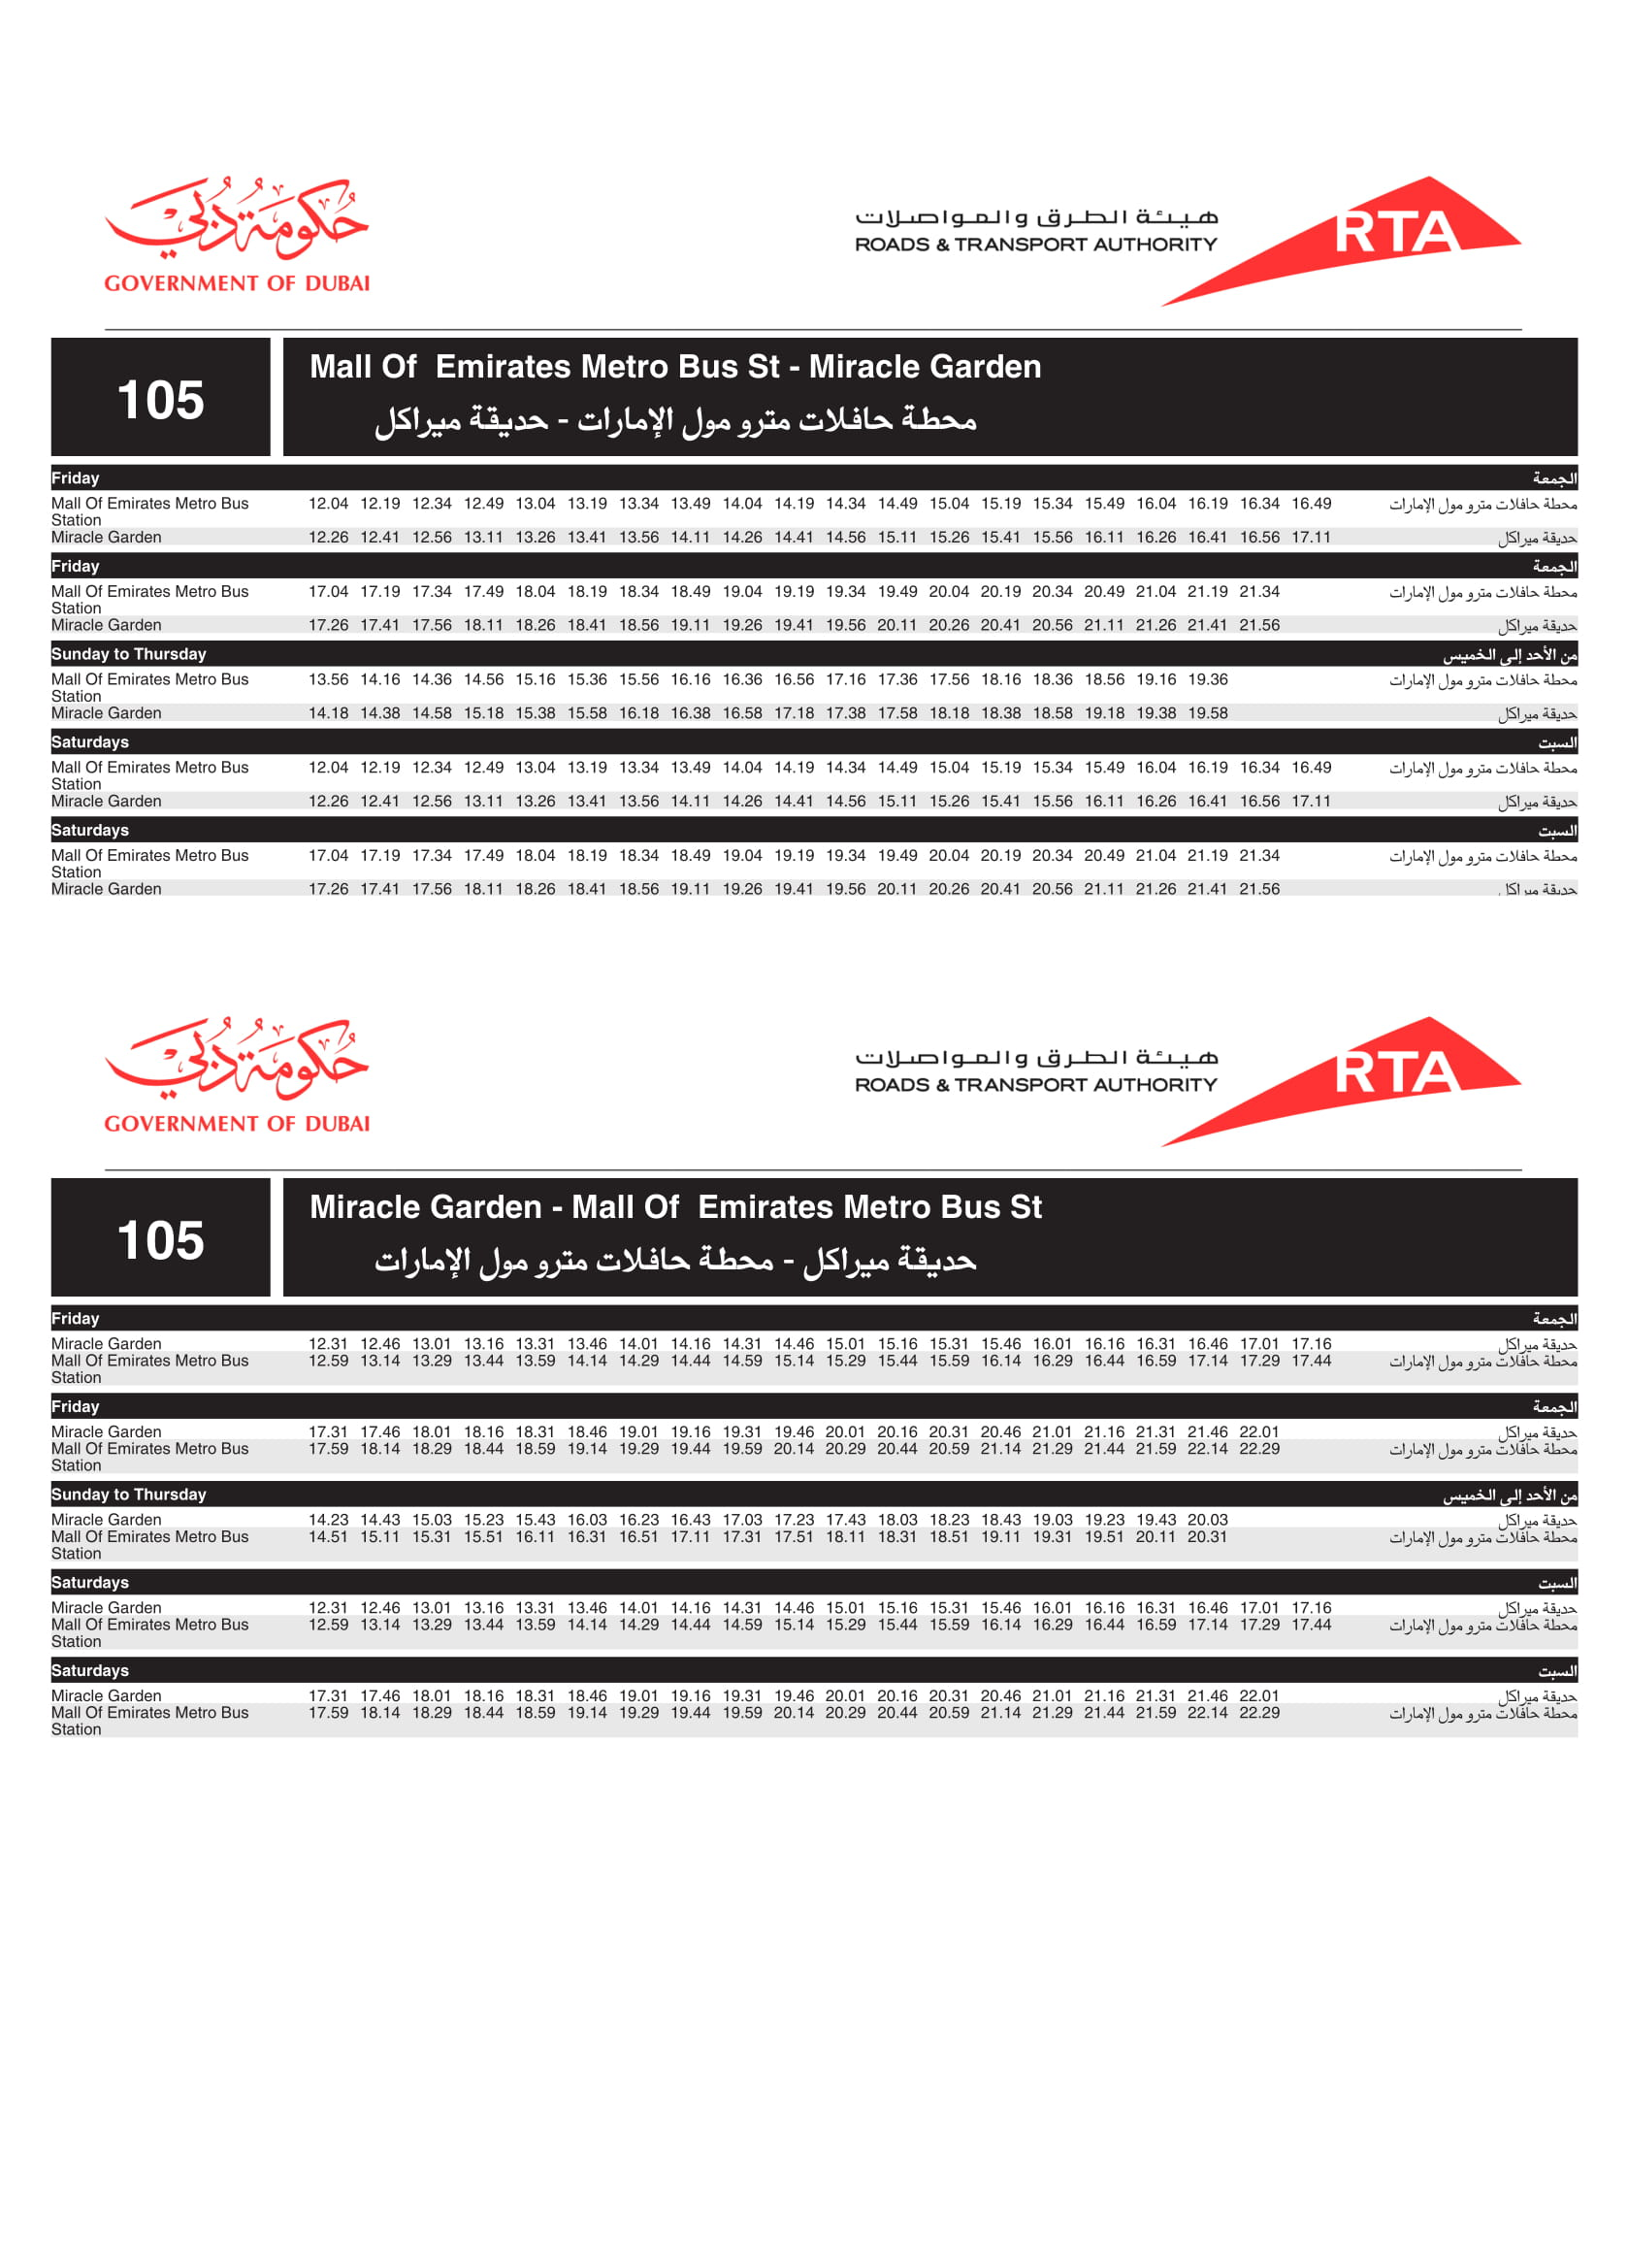 105 Bus Route in Dubai - Time Schedule, Stops and Maps